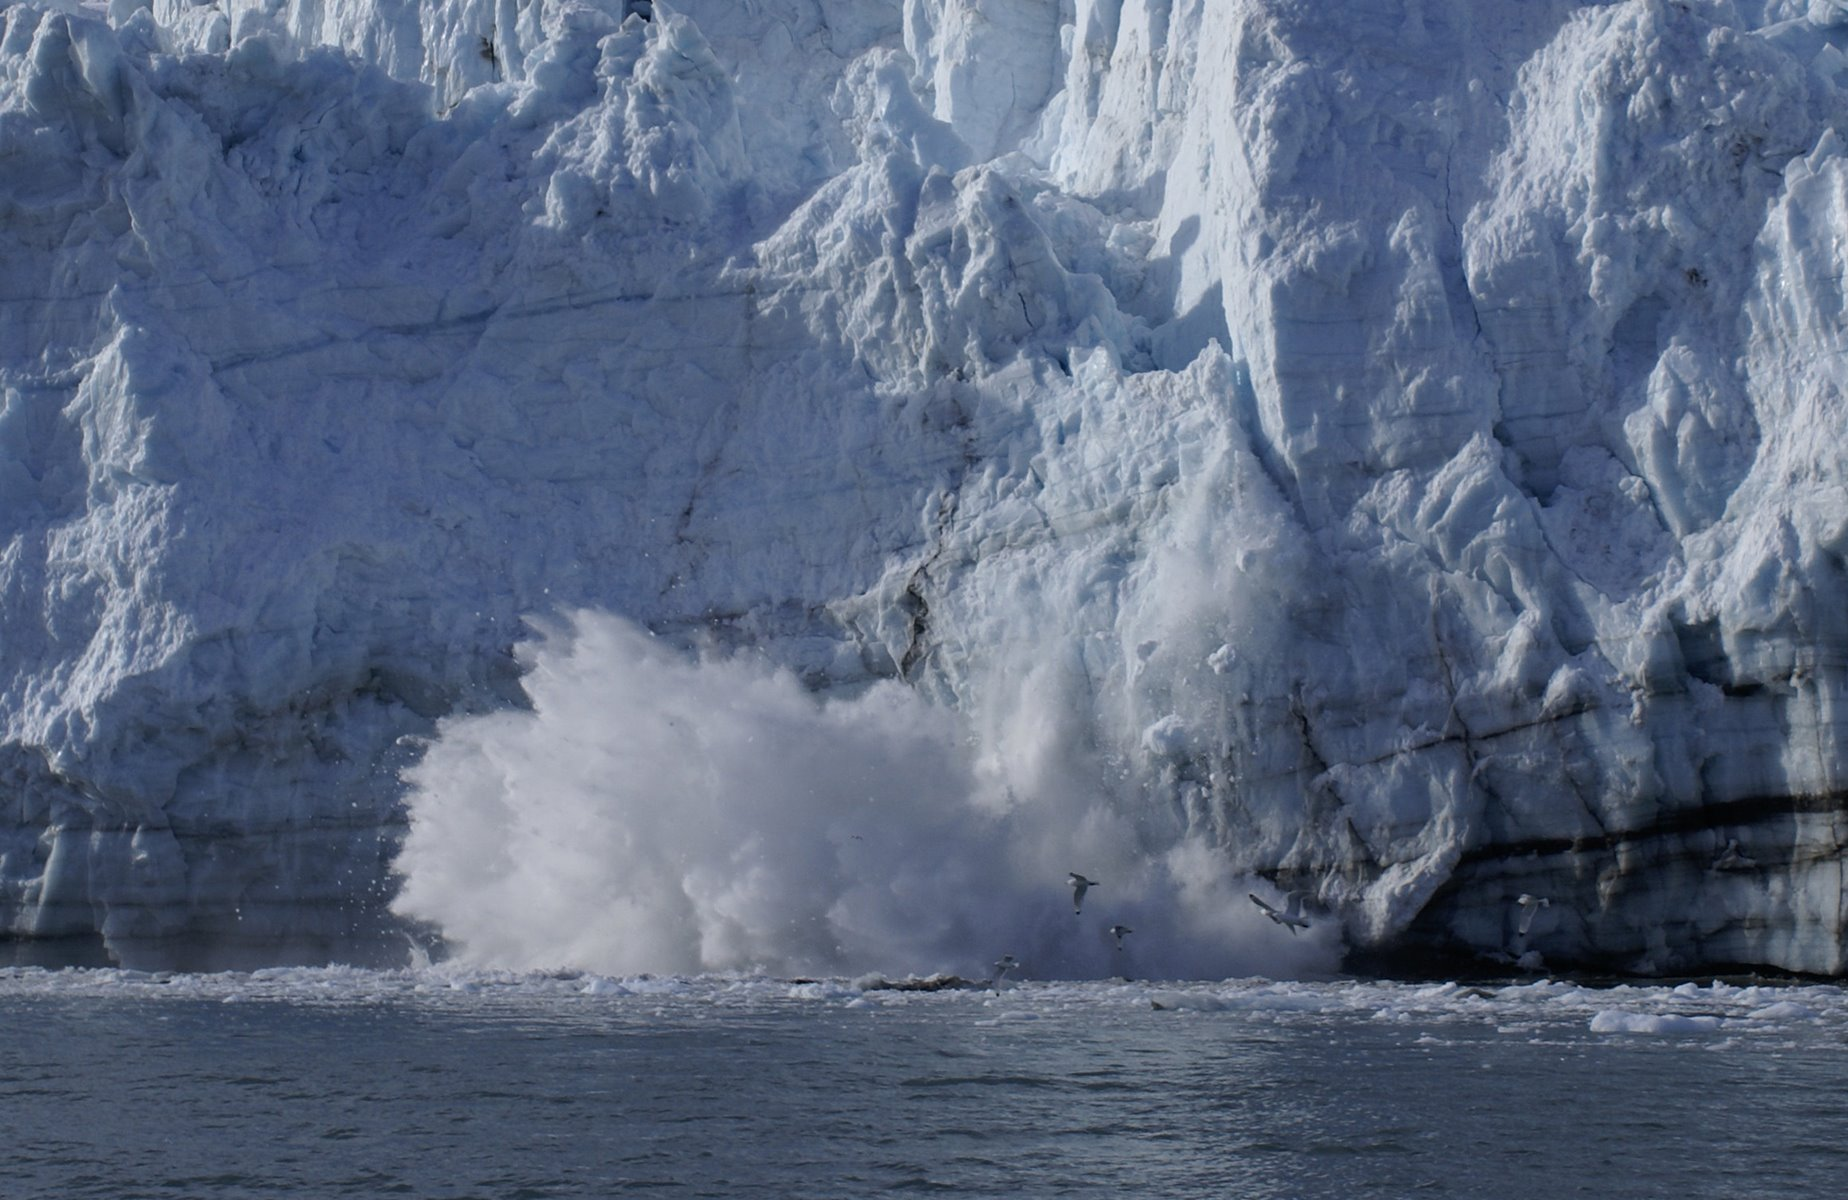 Calving glacier sequence, photo 6